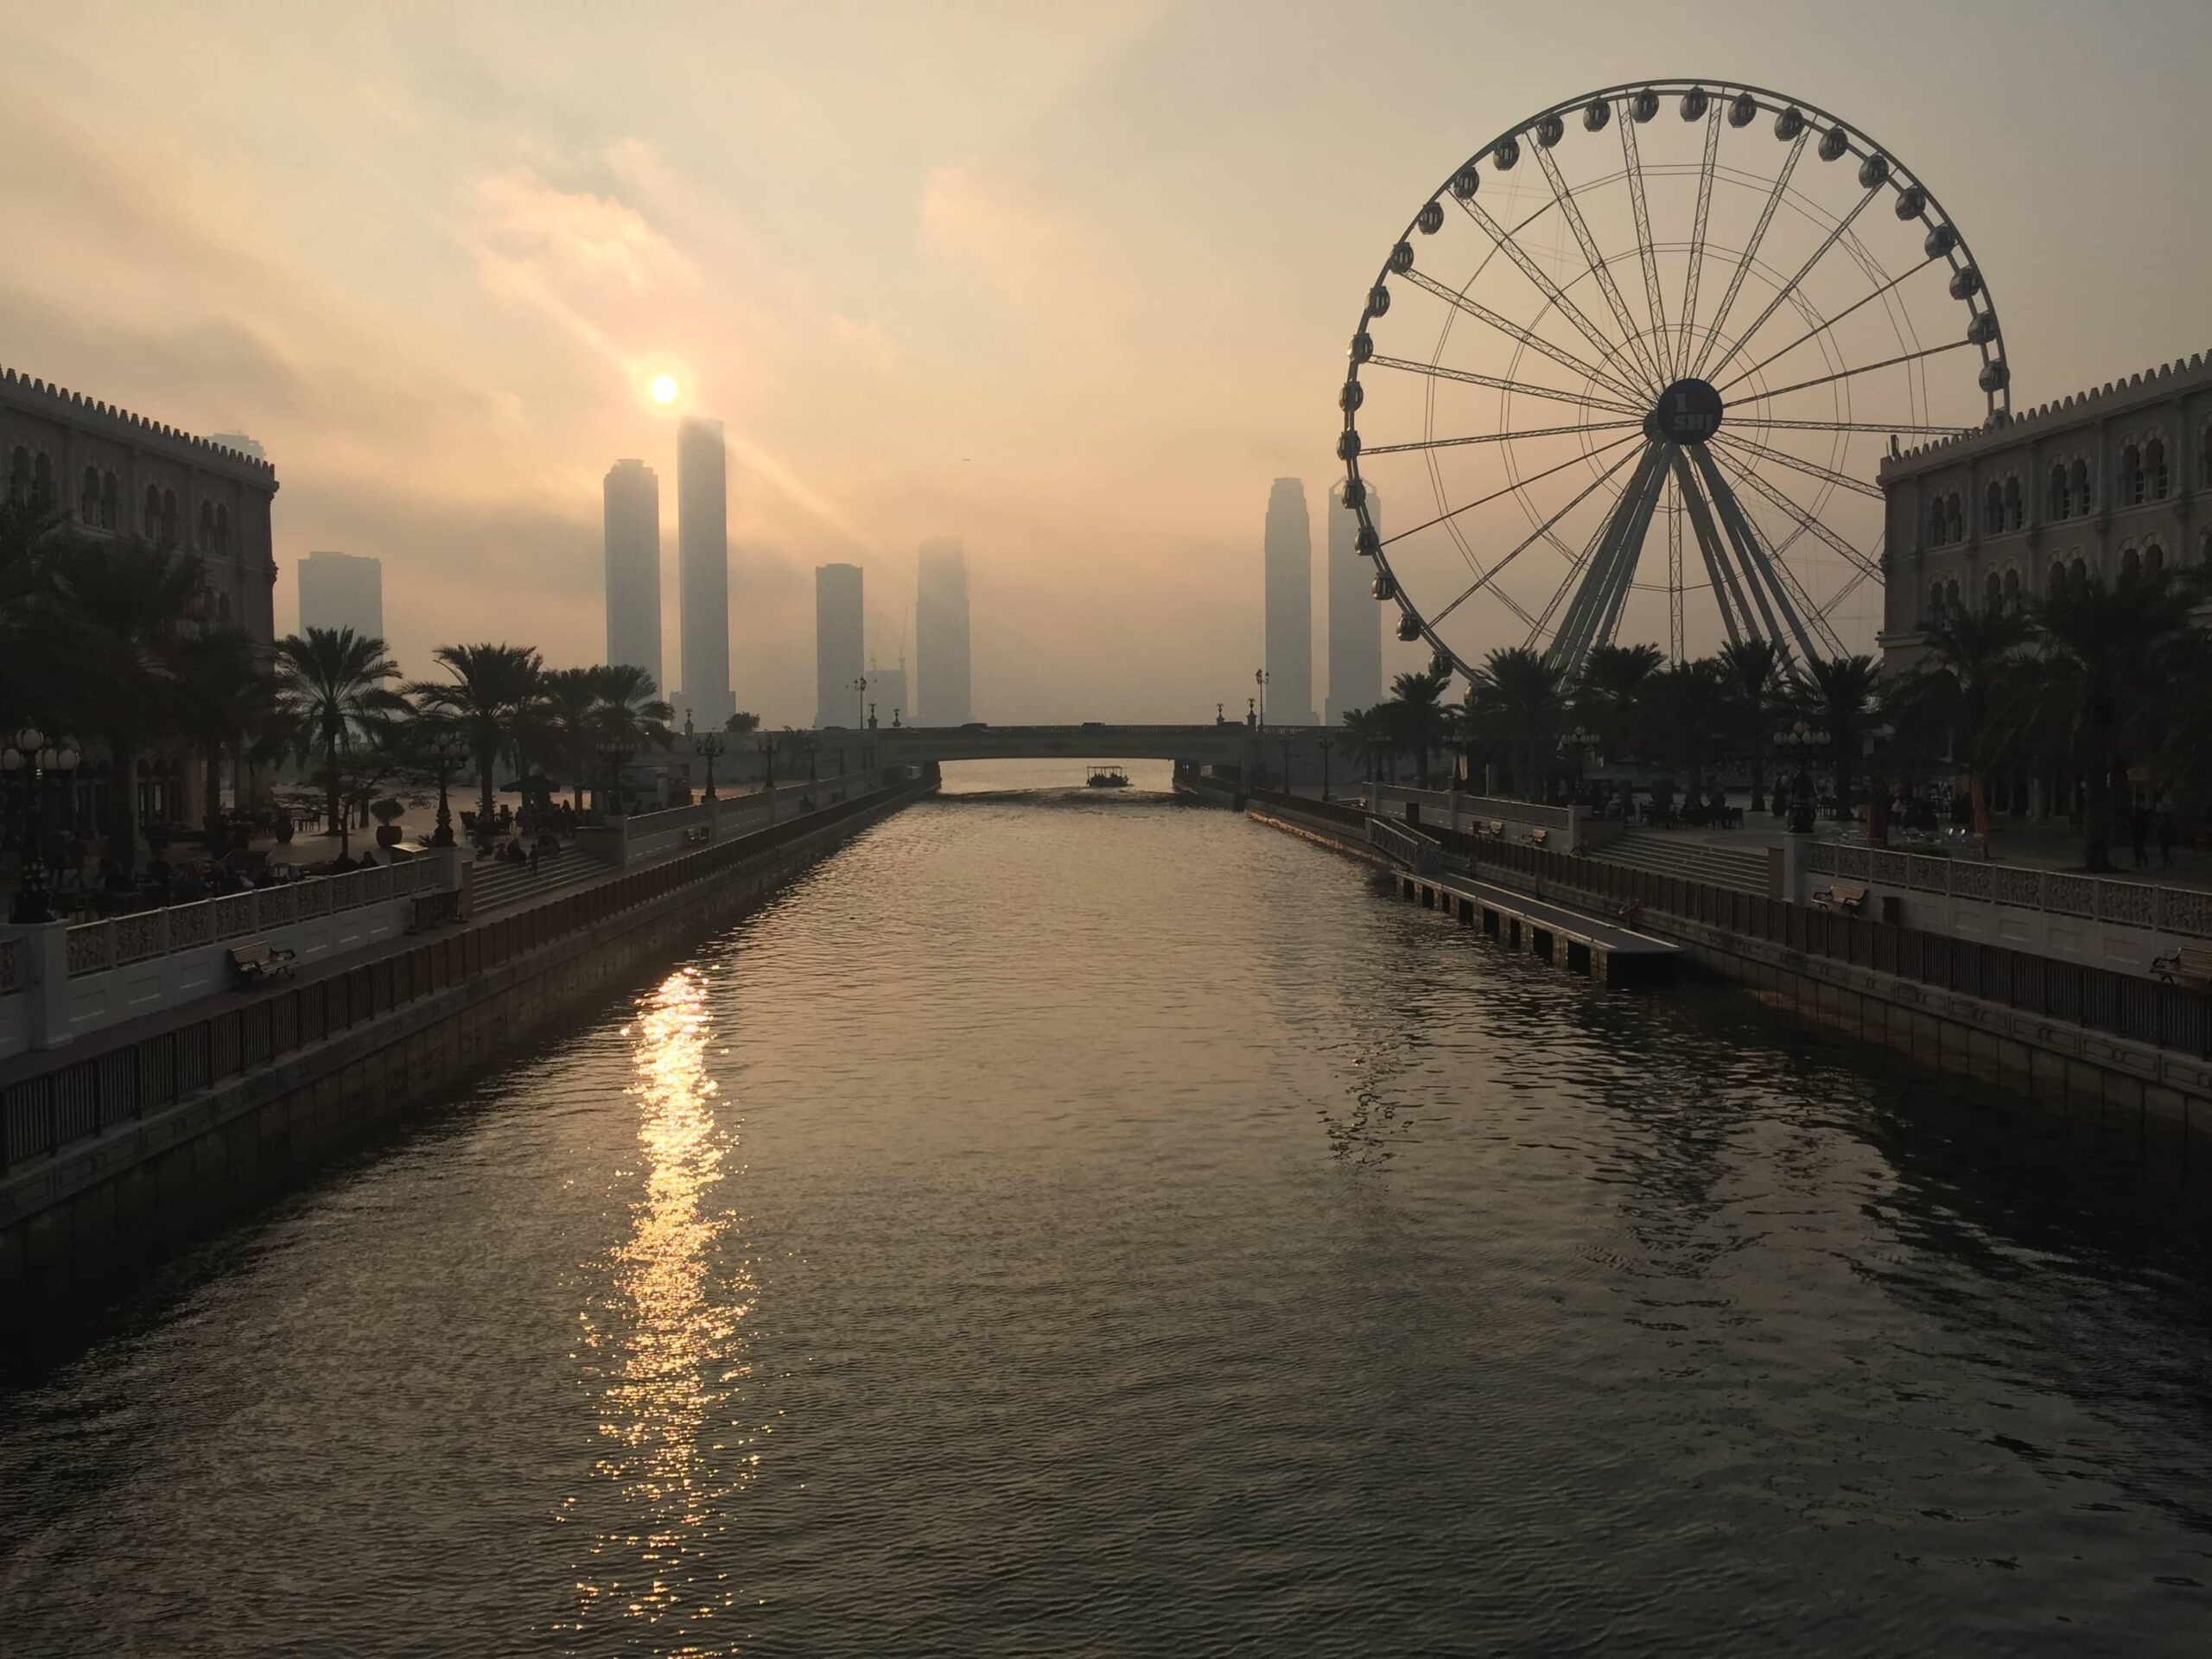 Qasba and Giant Wheel over sunset in Sharjah